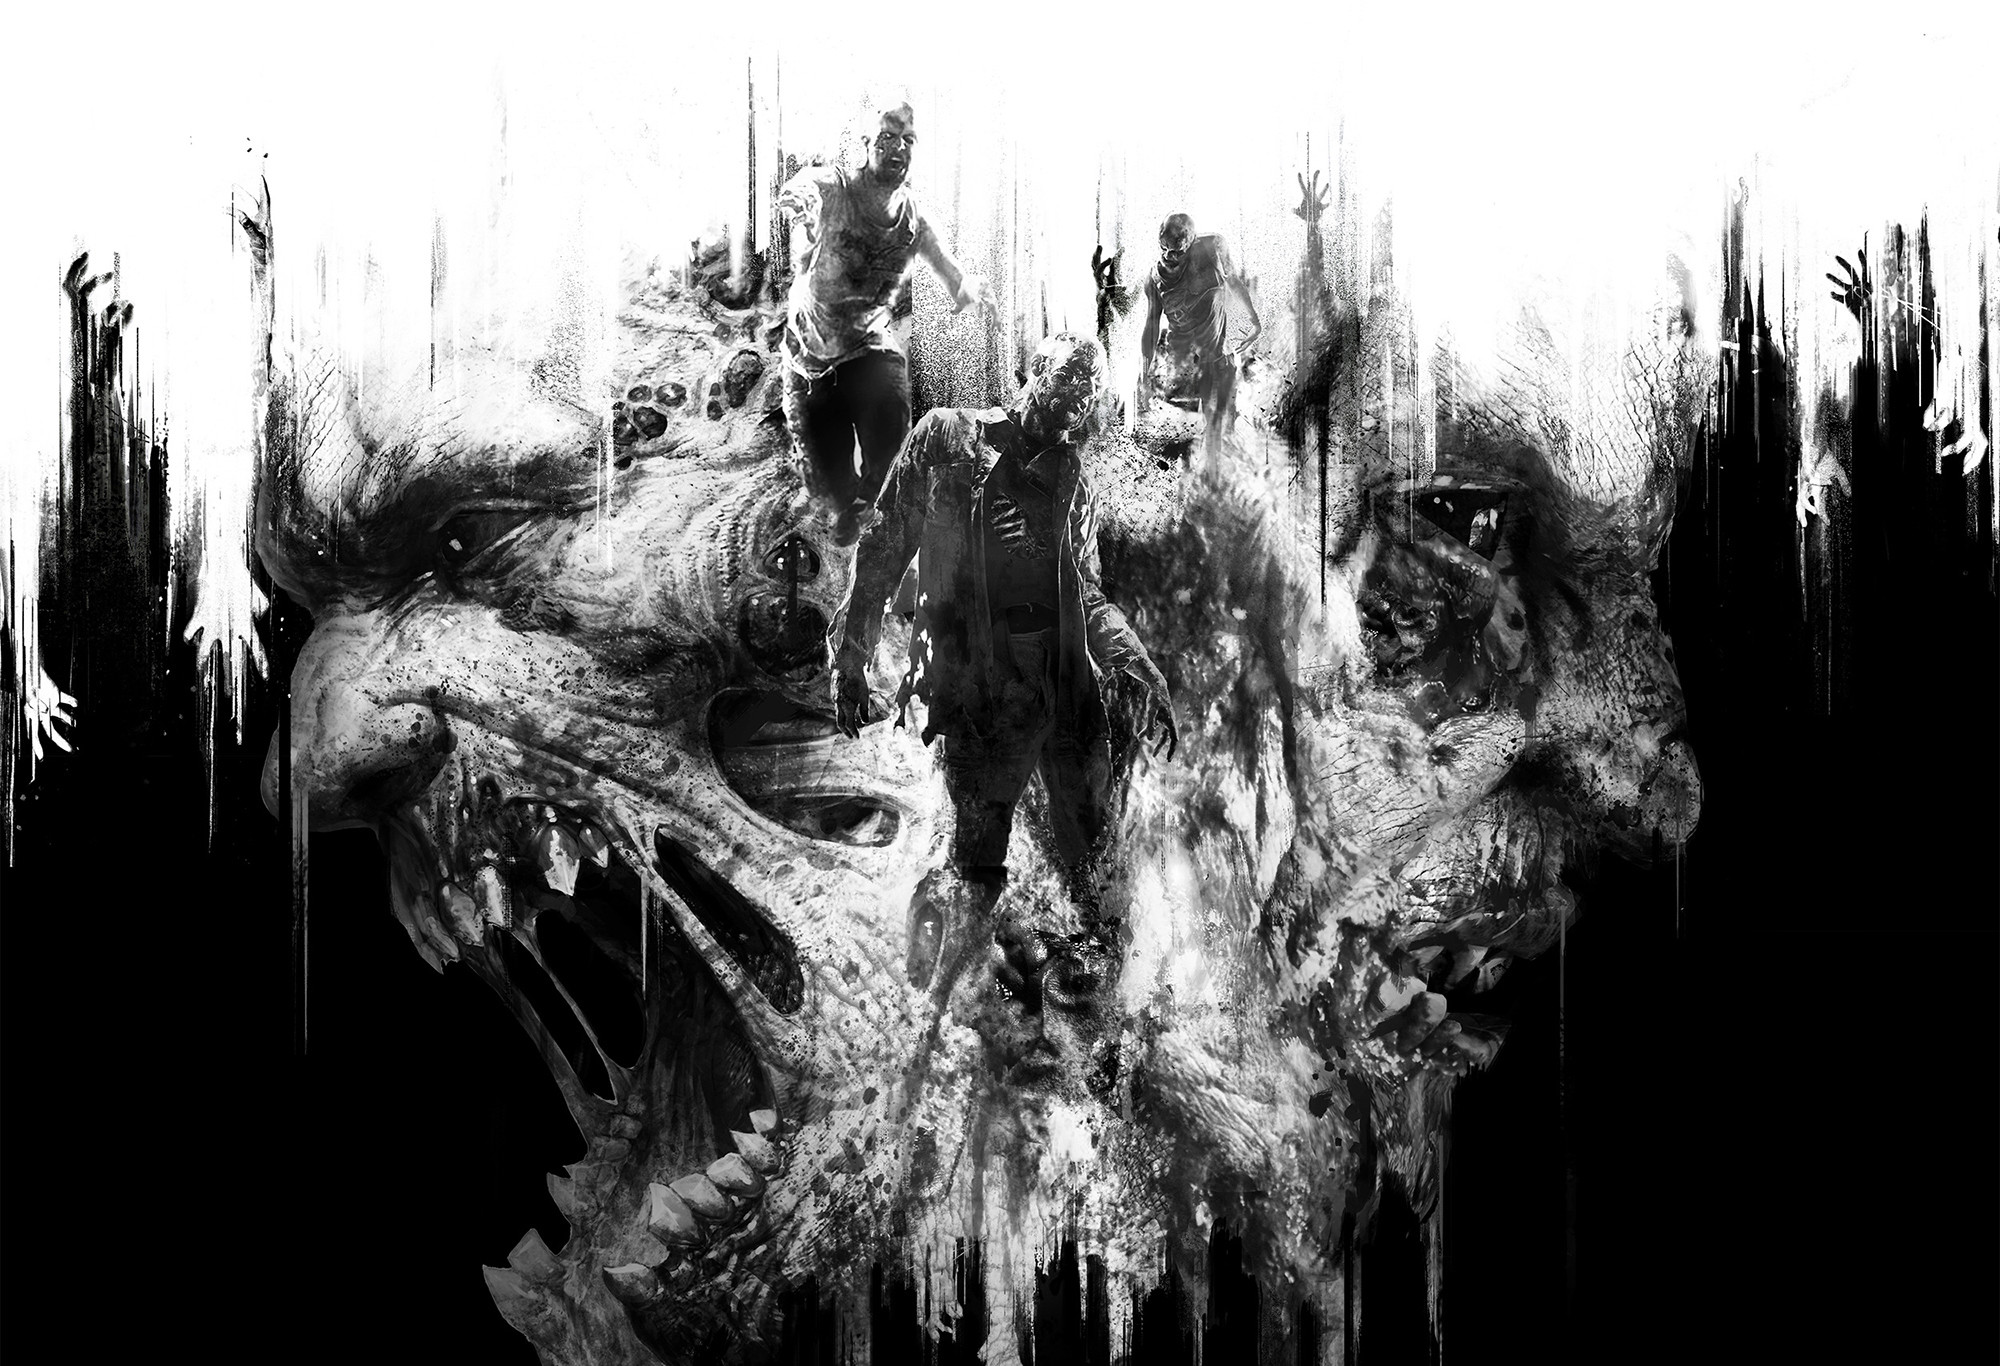 White zombie wallpaper 63 images 2000x1366 video game dying light video game creature monster horror black white zombie wallpaper voltagebd Gallery